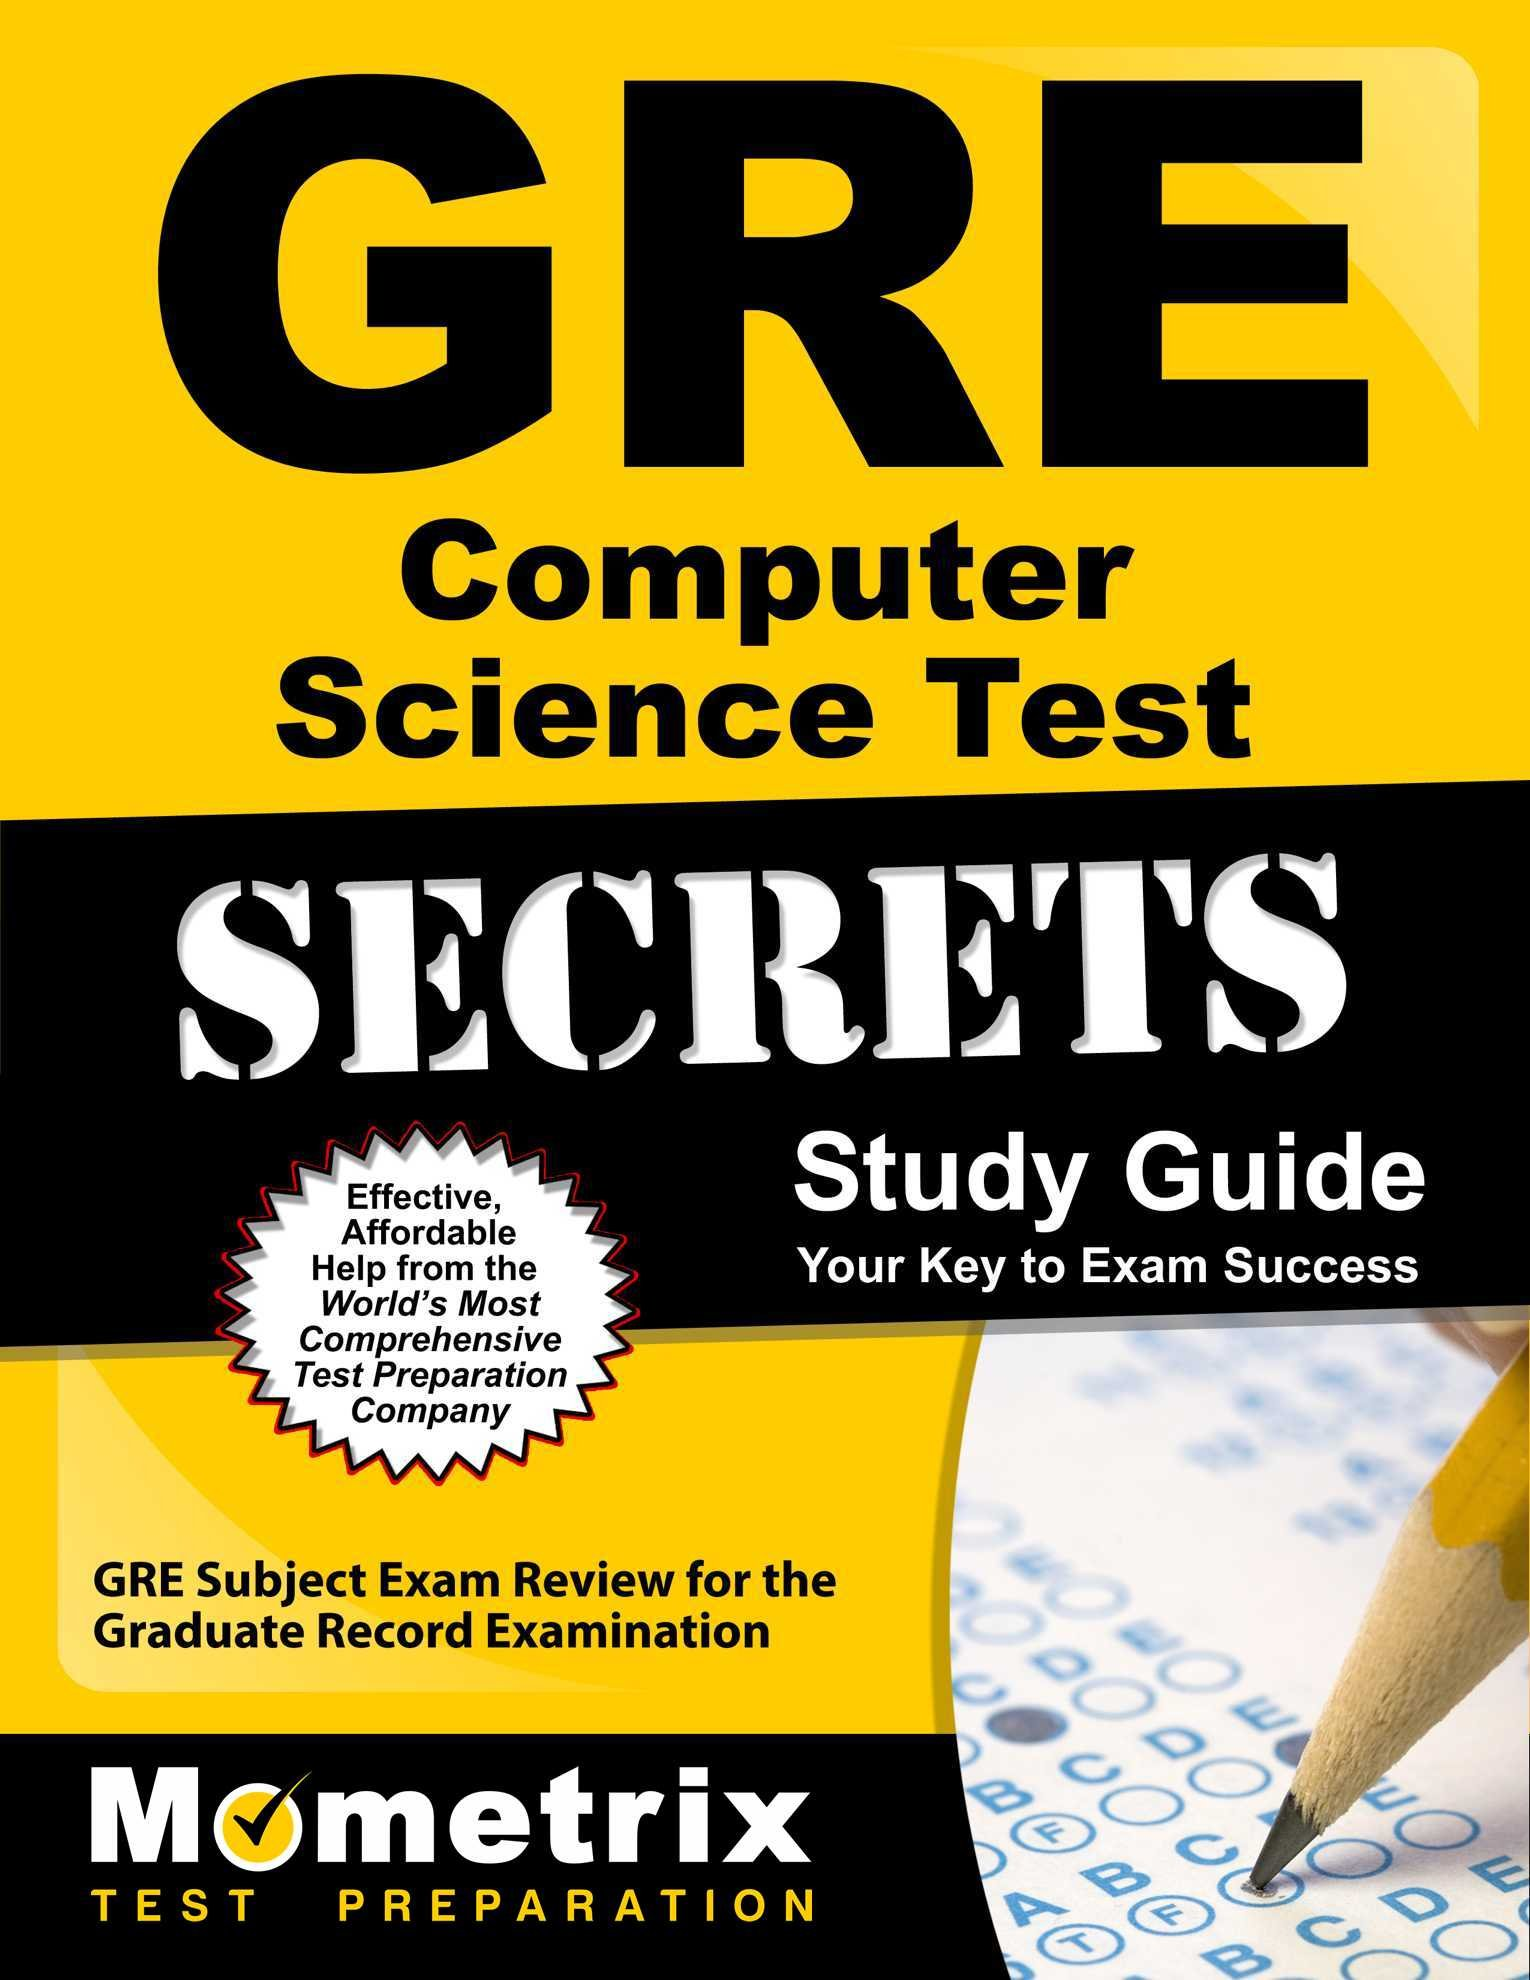 GRE Computer Science Test Secrets Study Guide: GRE Subject Exam Review for the Graduate Record Examination